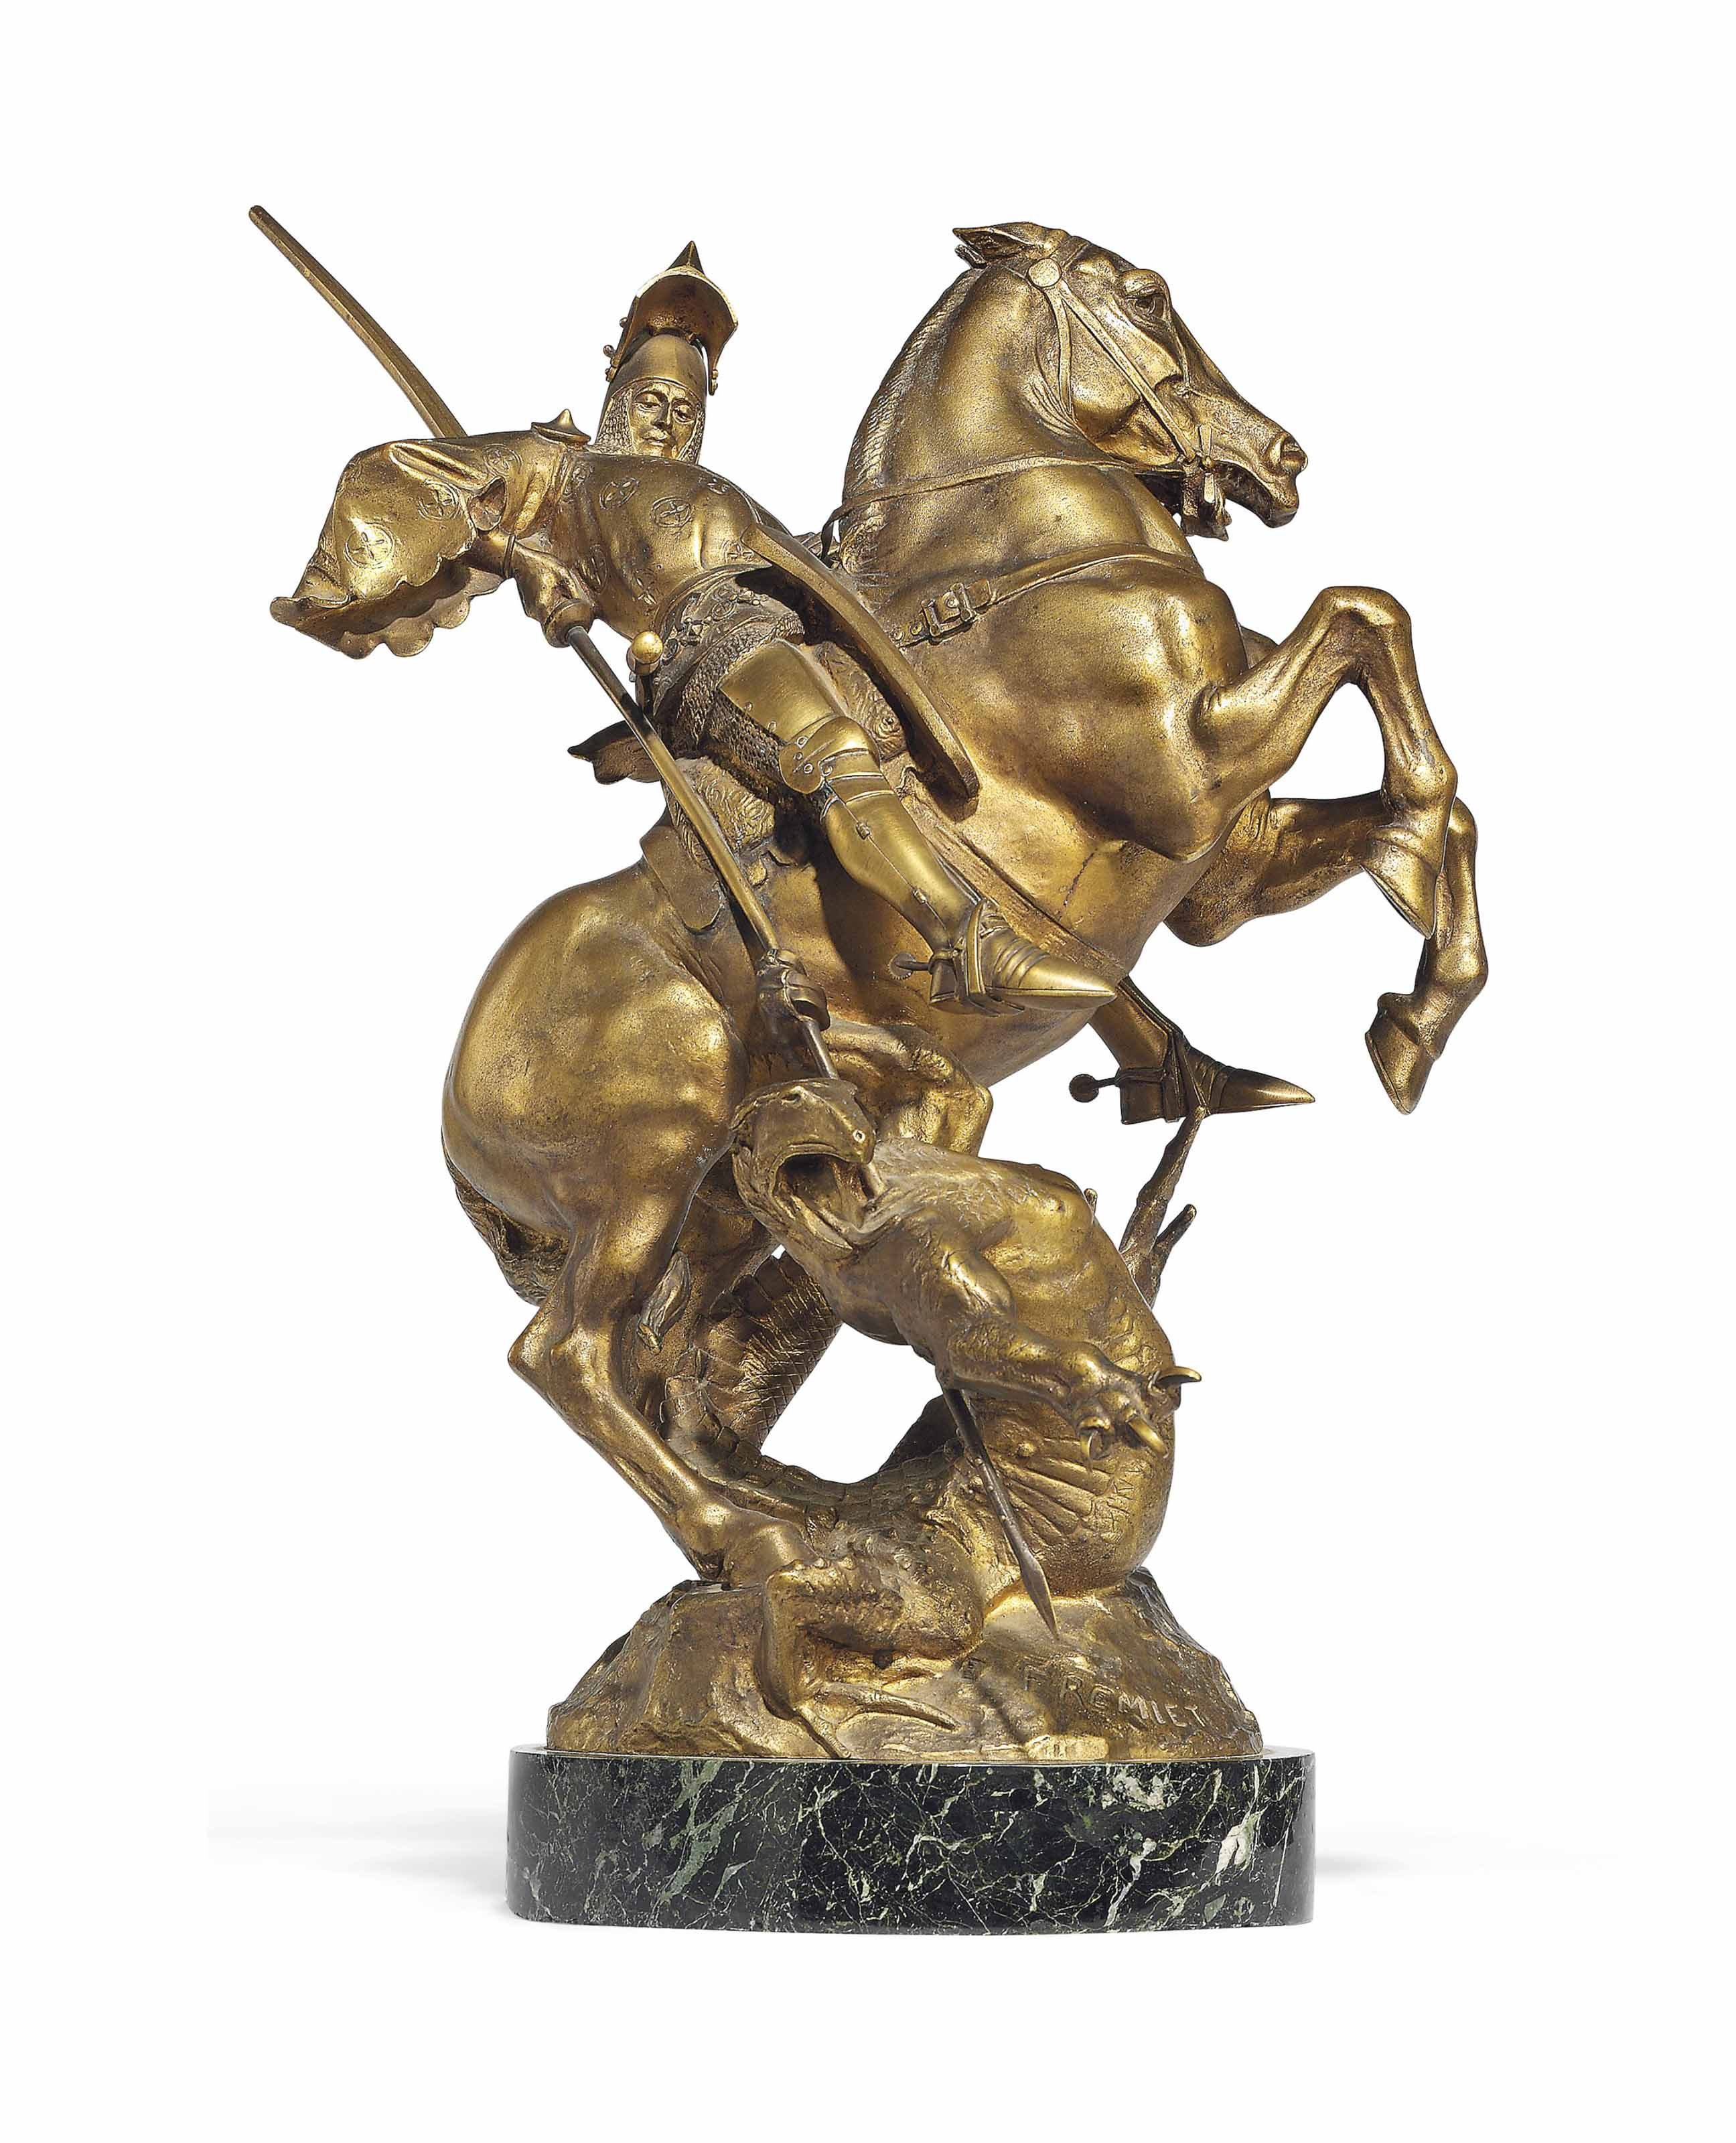 A FRENCH GILT-BRONZE GROUP OF SAINT GEORGE SLAYING THE DRAGON